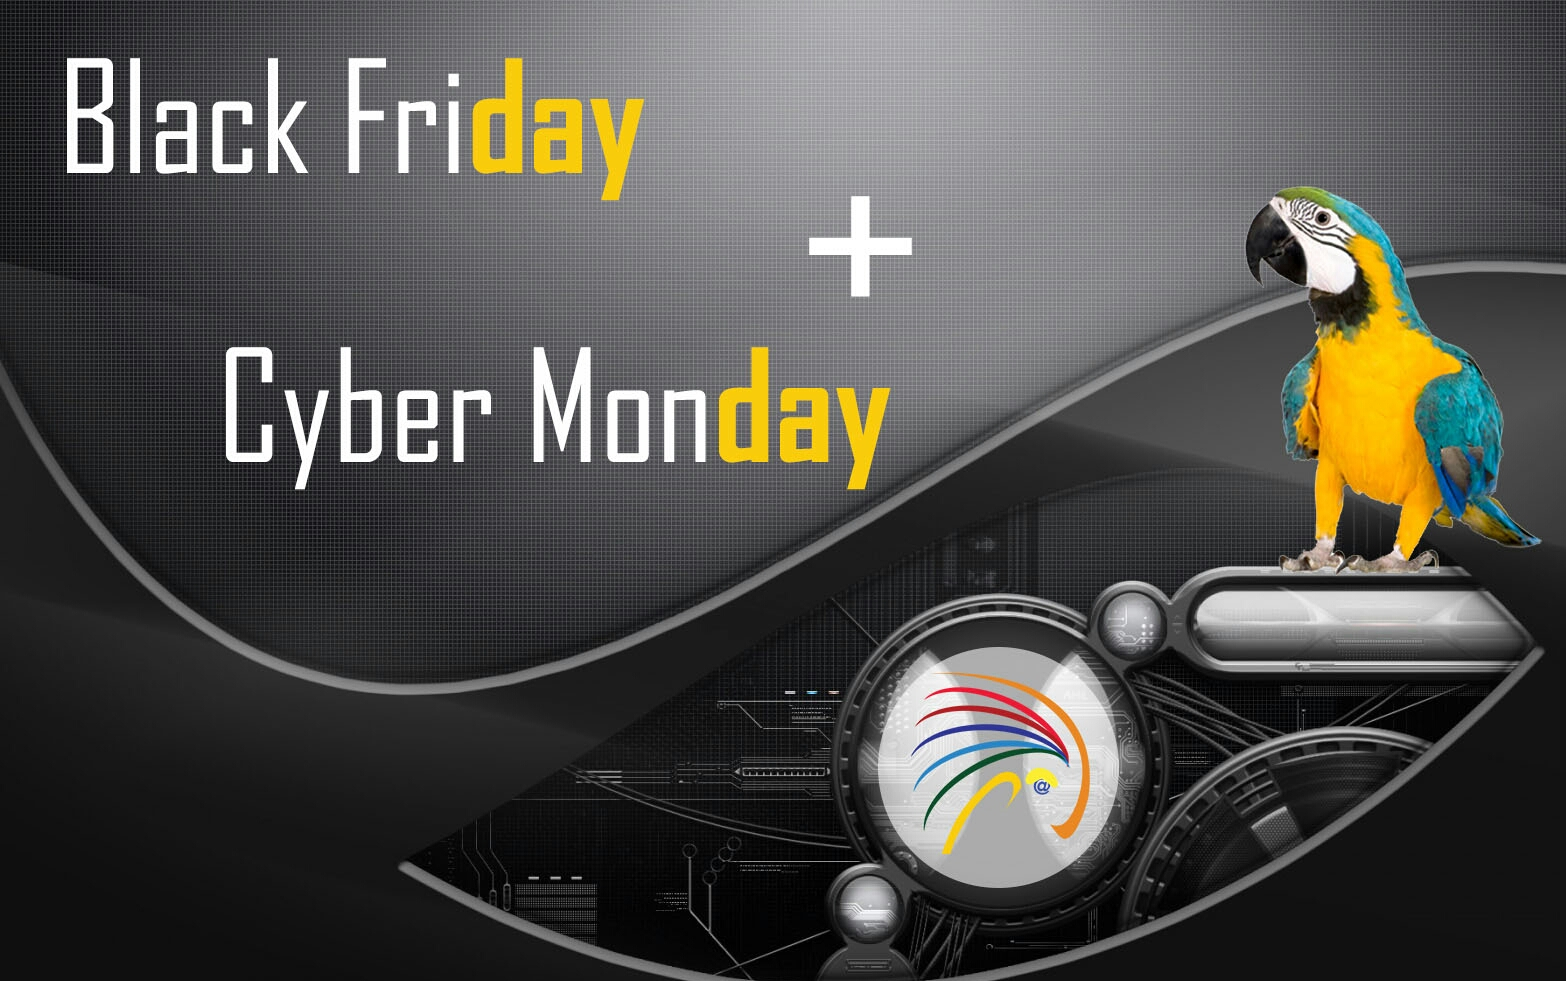 Centralino cloud: Black Friday + Cyber Monday = Special Day 2019!